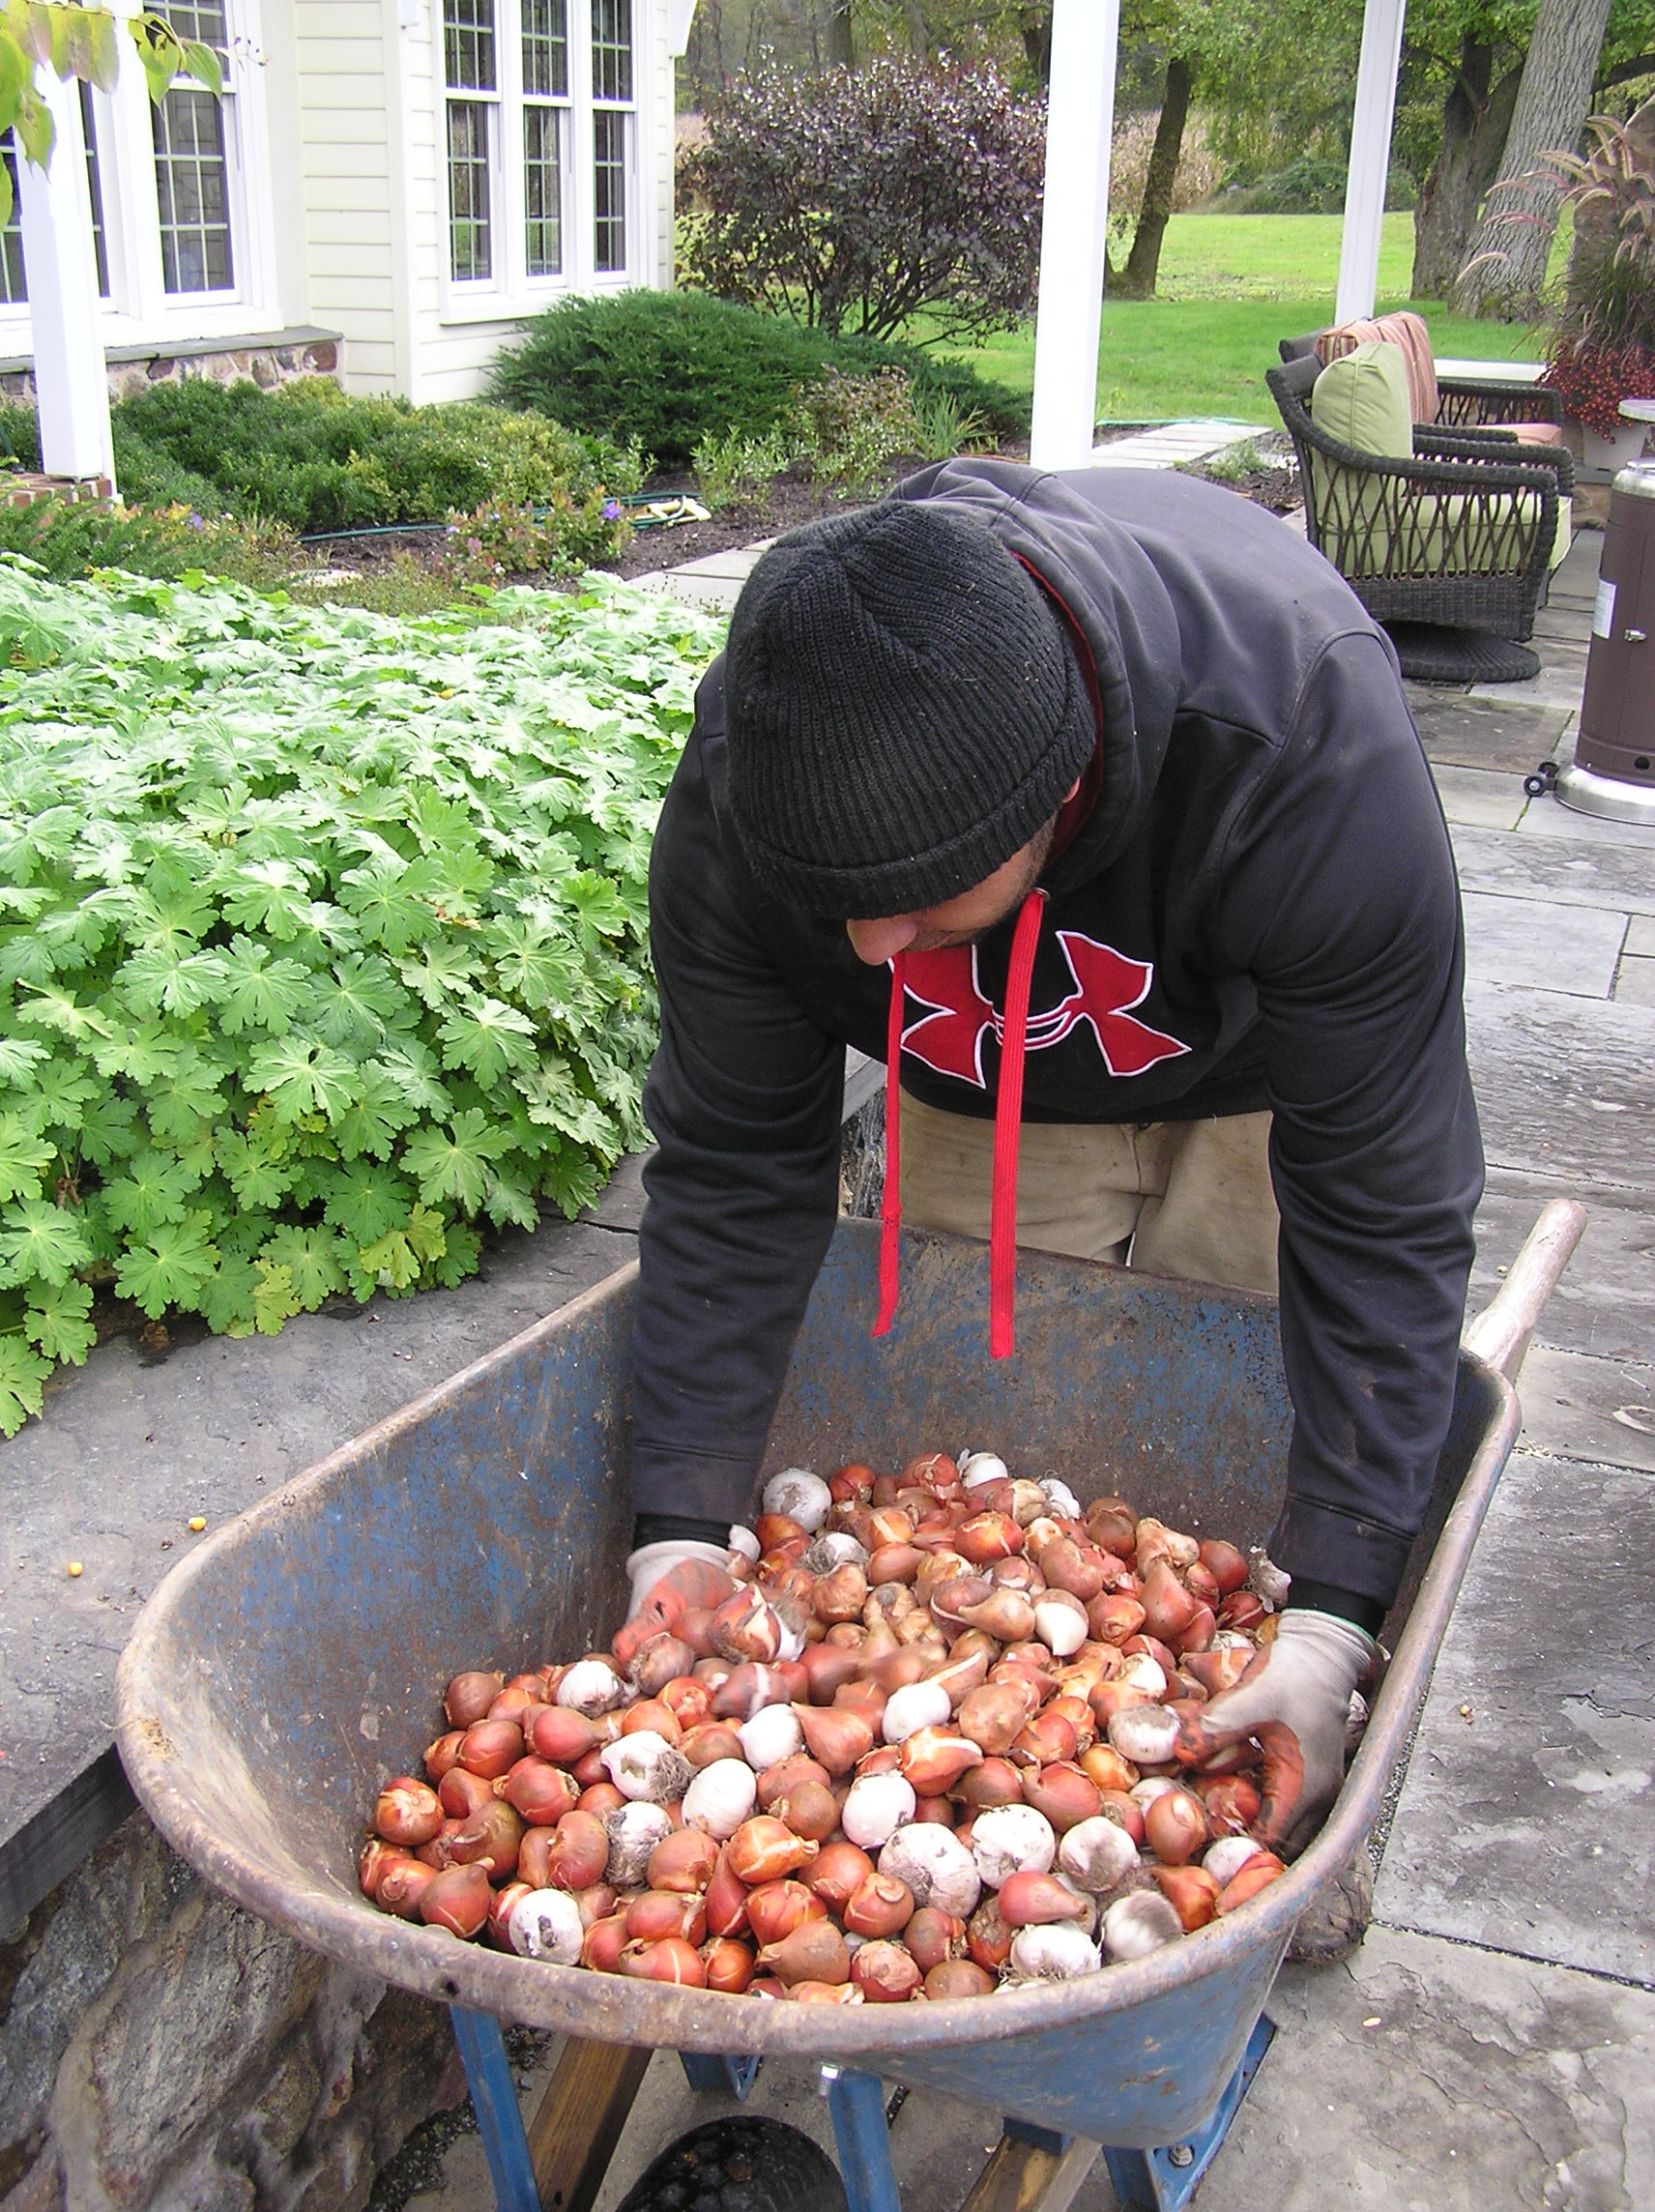 Bulb planting in the fall for early spring and summer bloom from bulbs